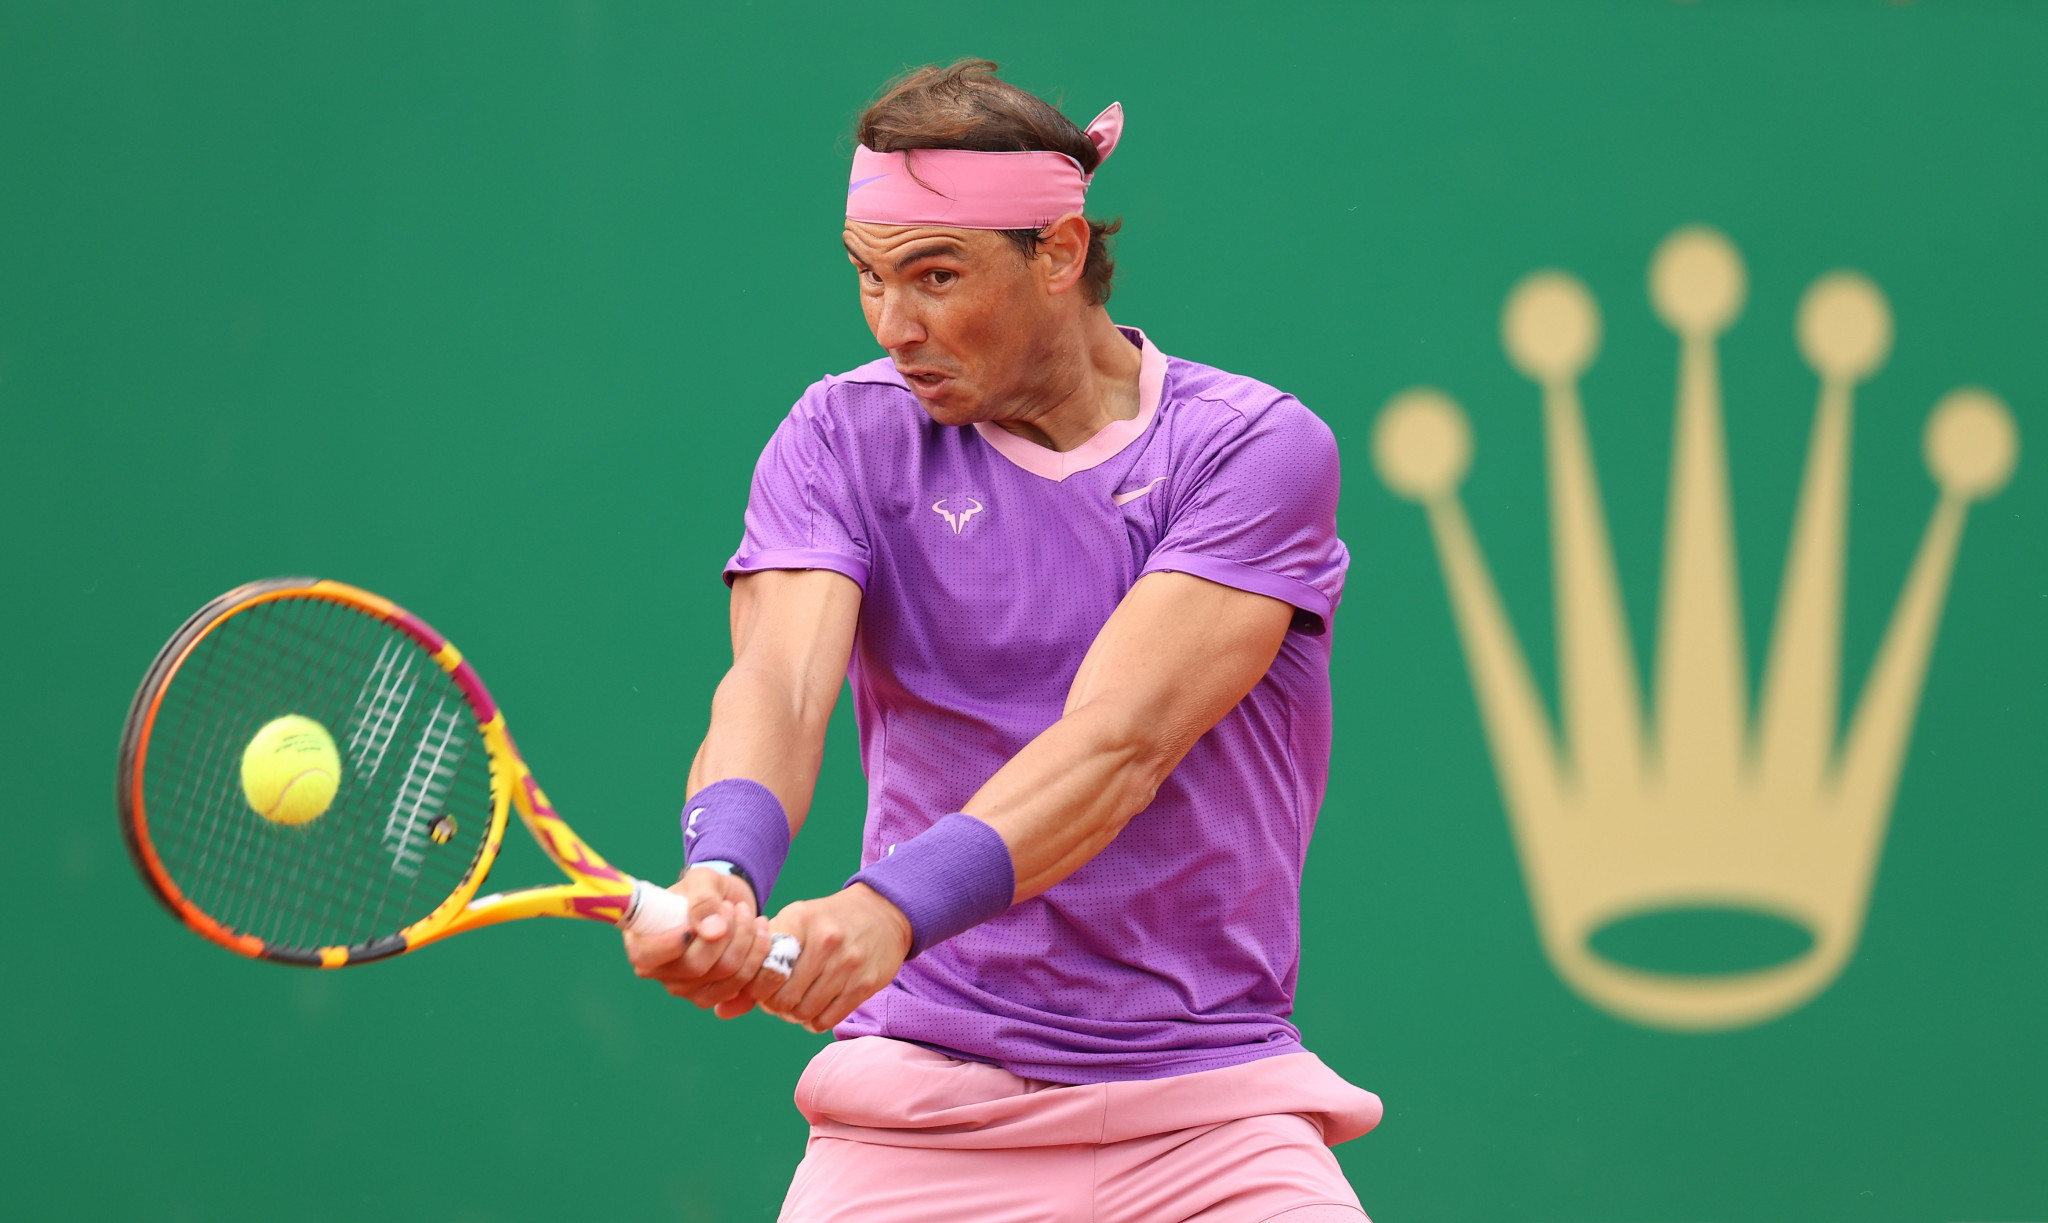 Rafael Nadal has pulled out of the Tokyo 2020 Olympics ©Getty Images